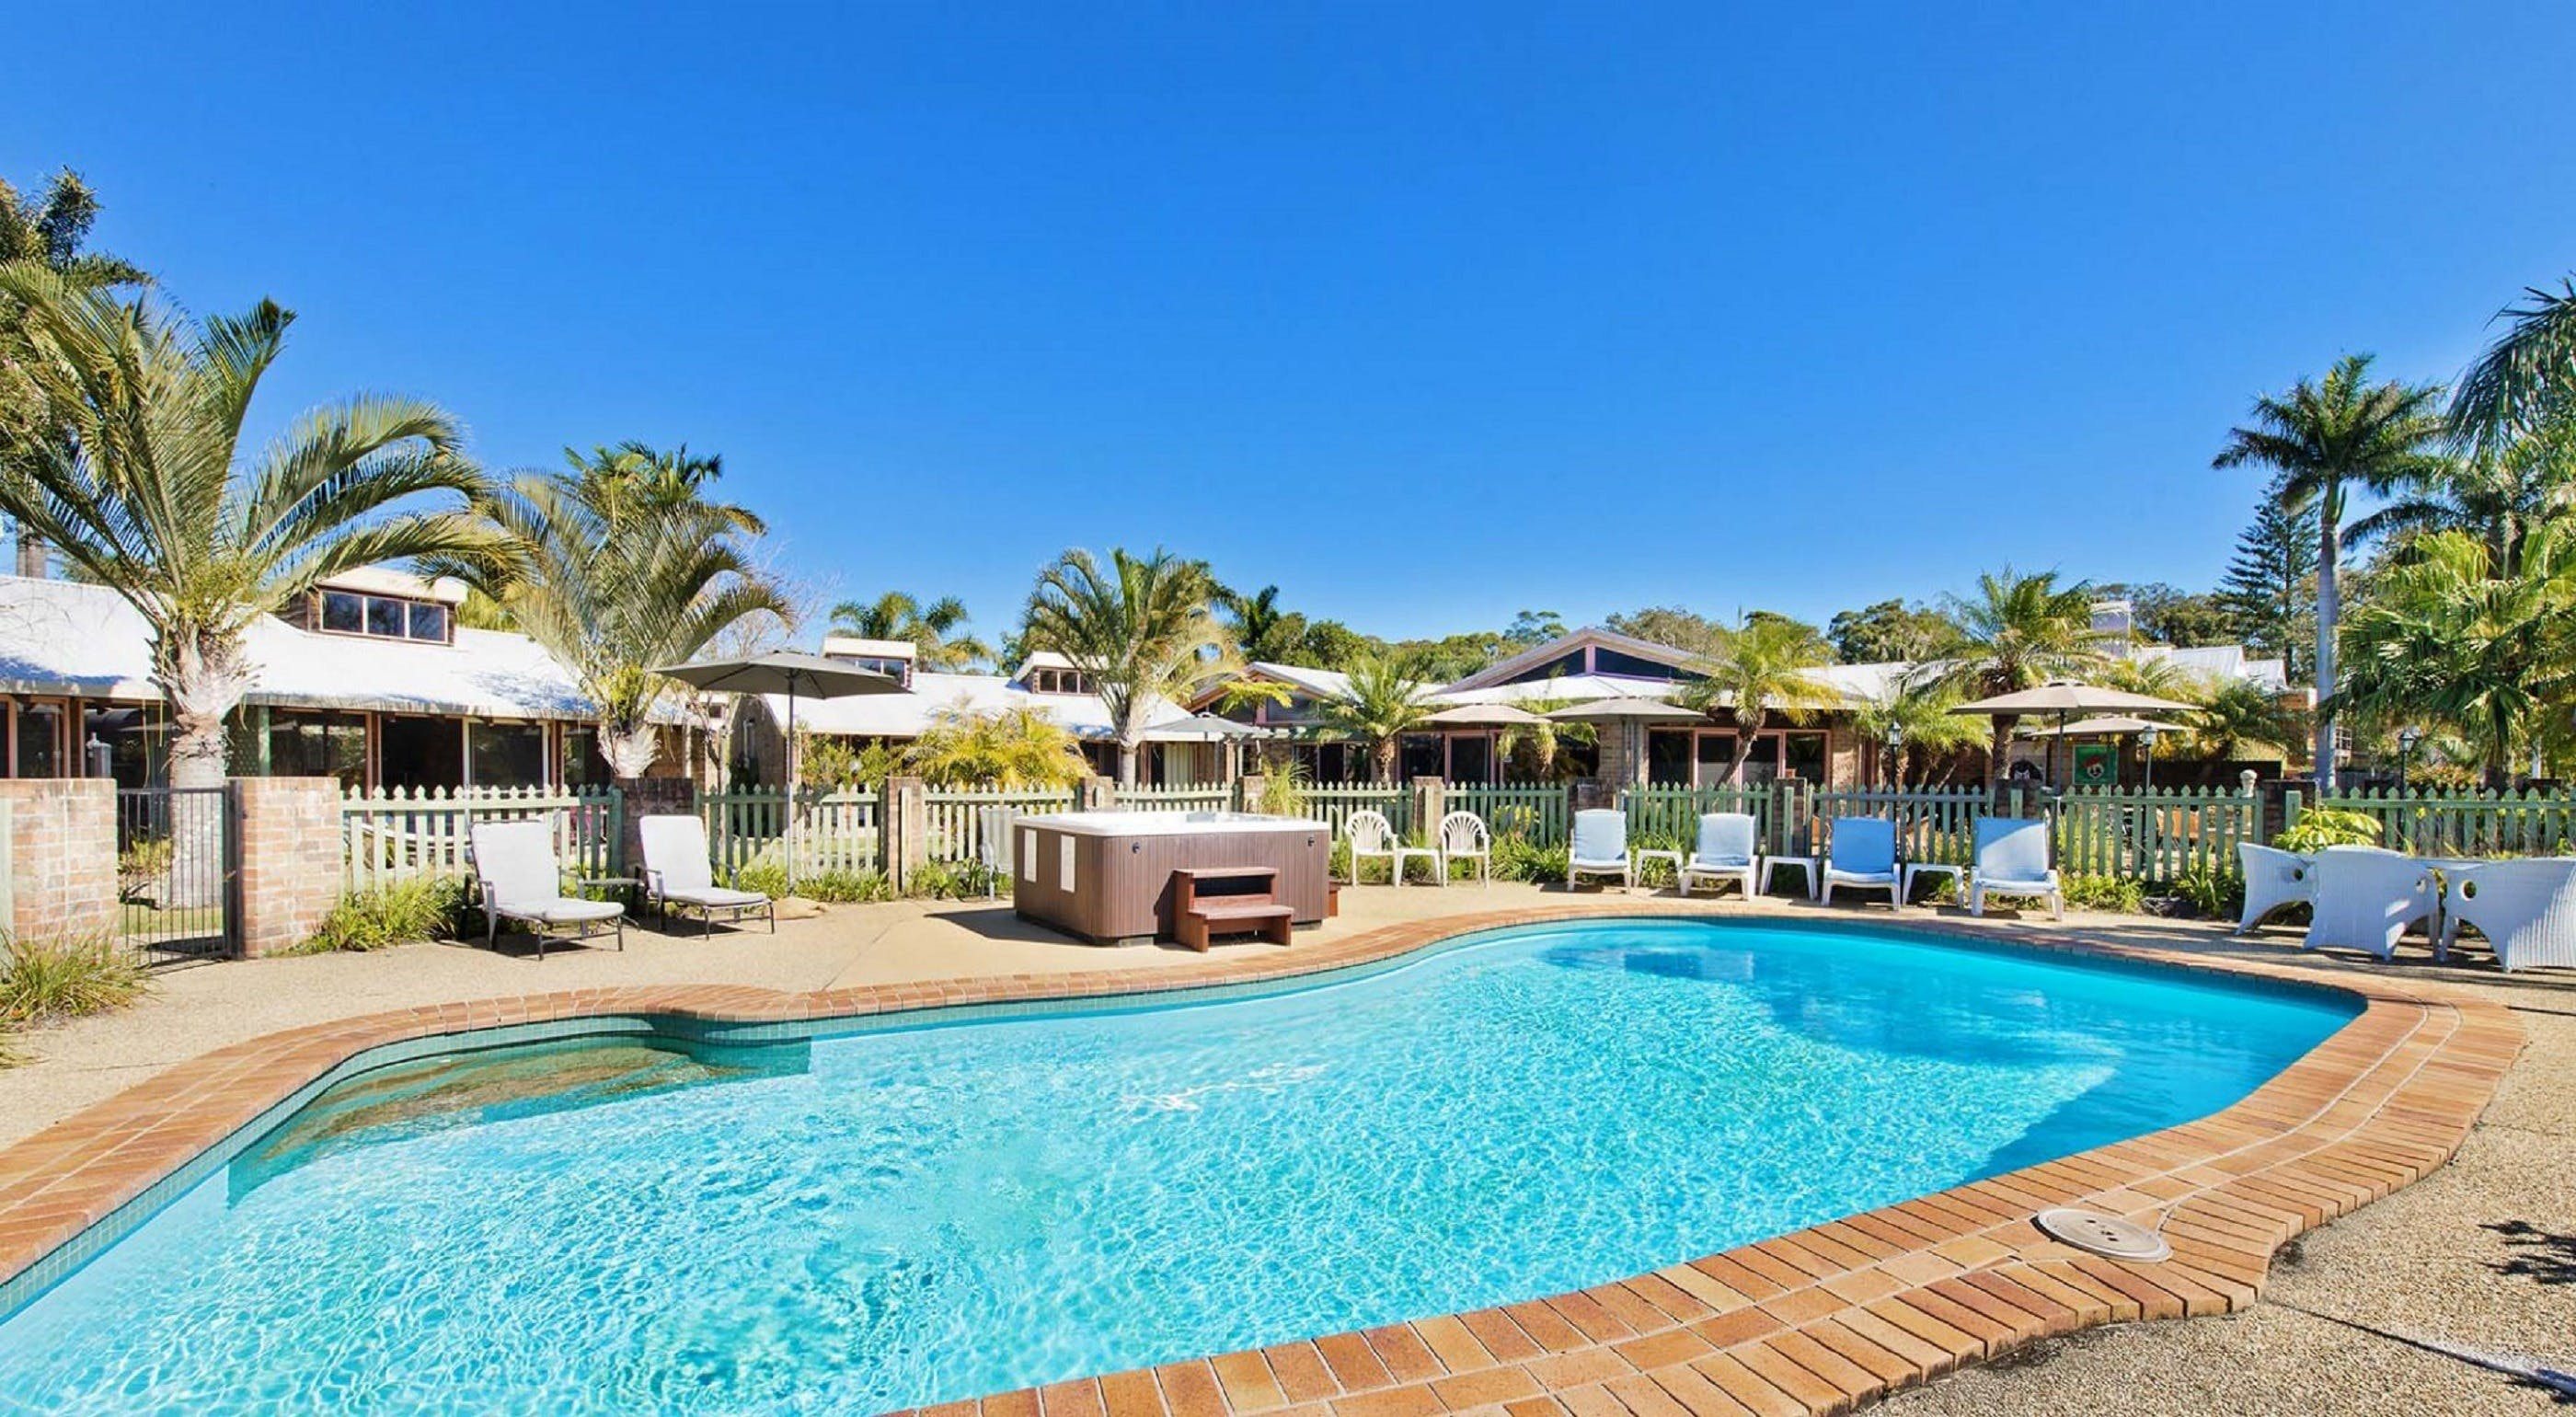 Crescent Head Resort And Conferance Centre - Accommodation Coffs Harbour